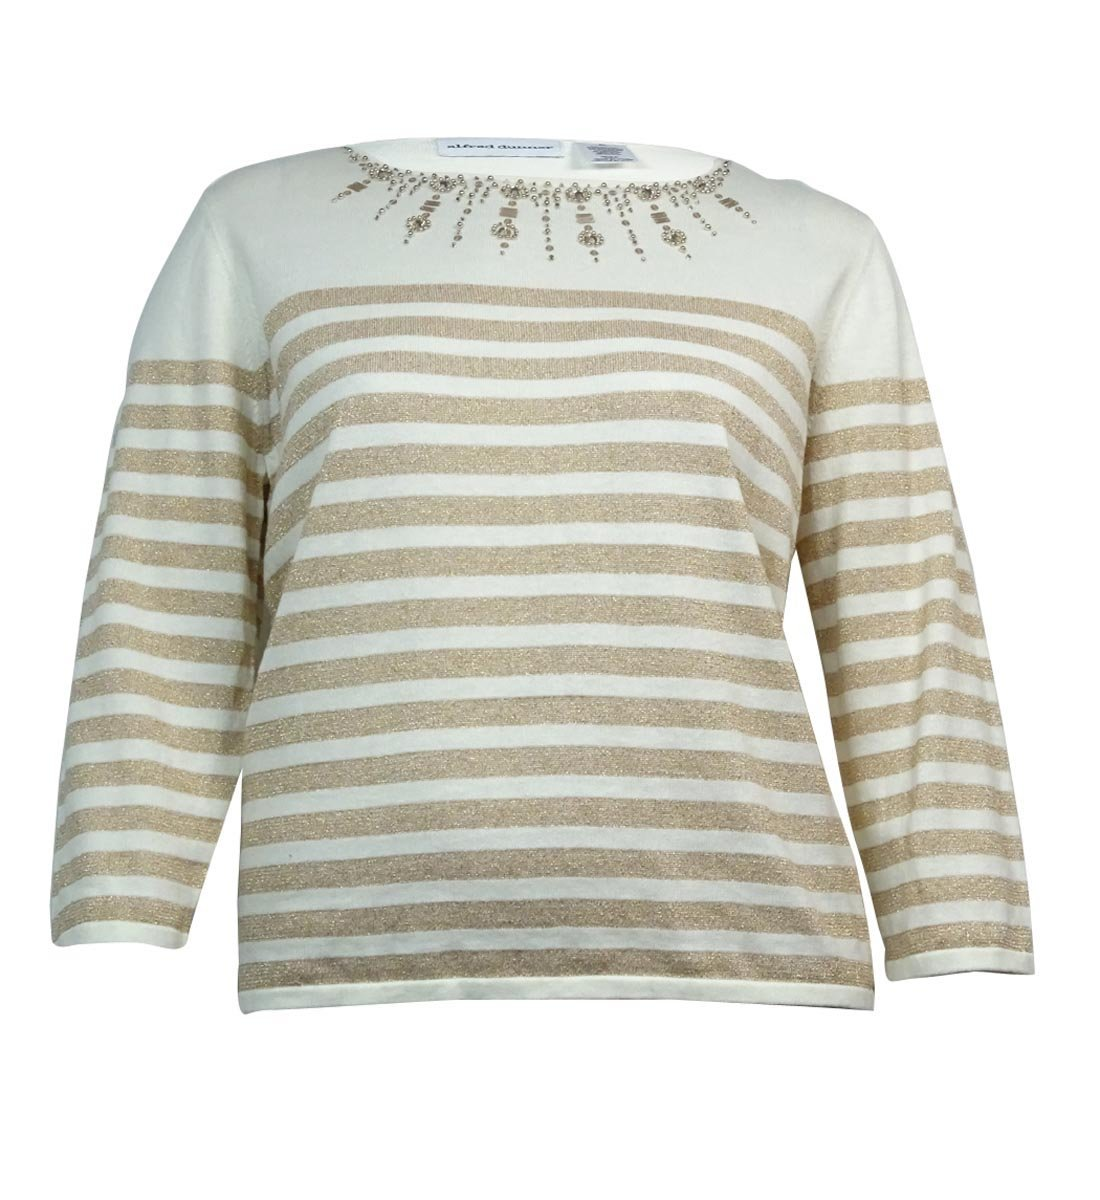 Alfred Dunner Women's Beaded Metallic Striped Top (PS, Ivory/Gold)